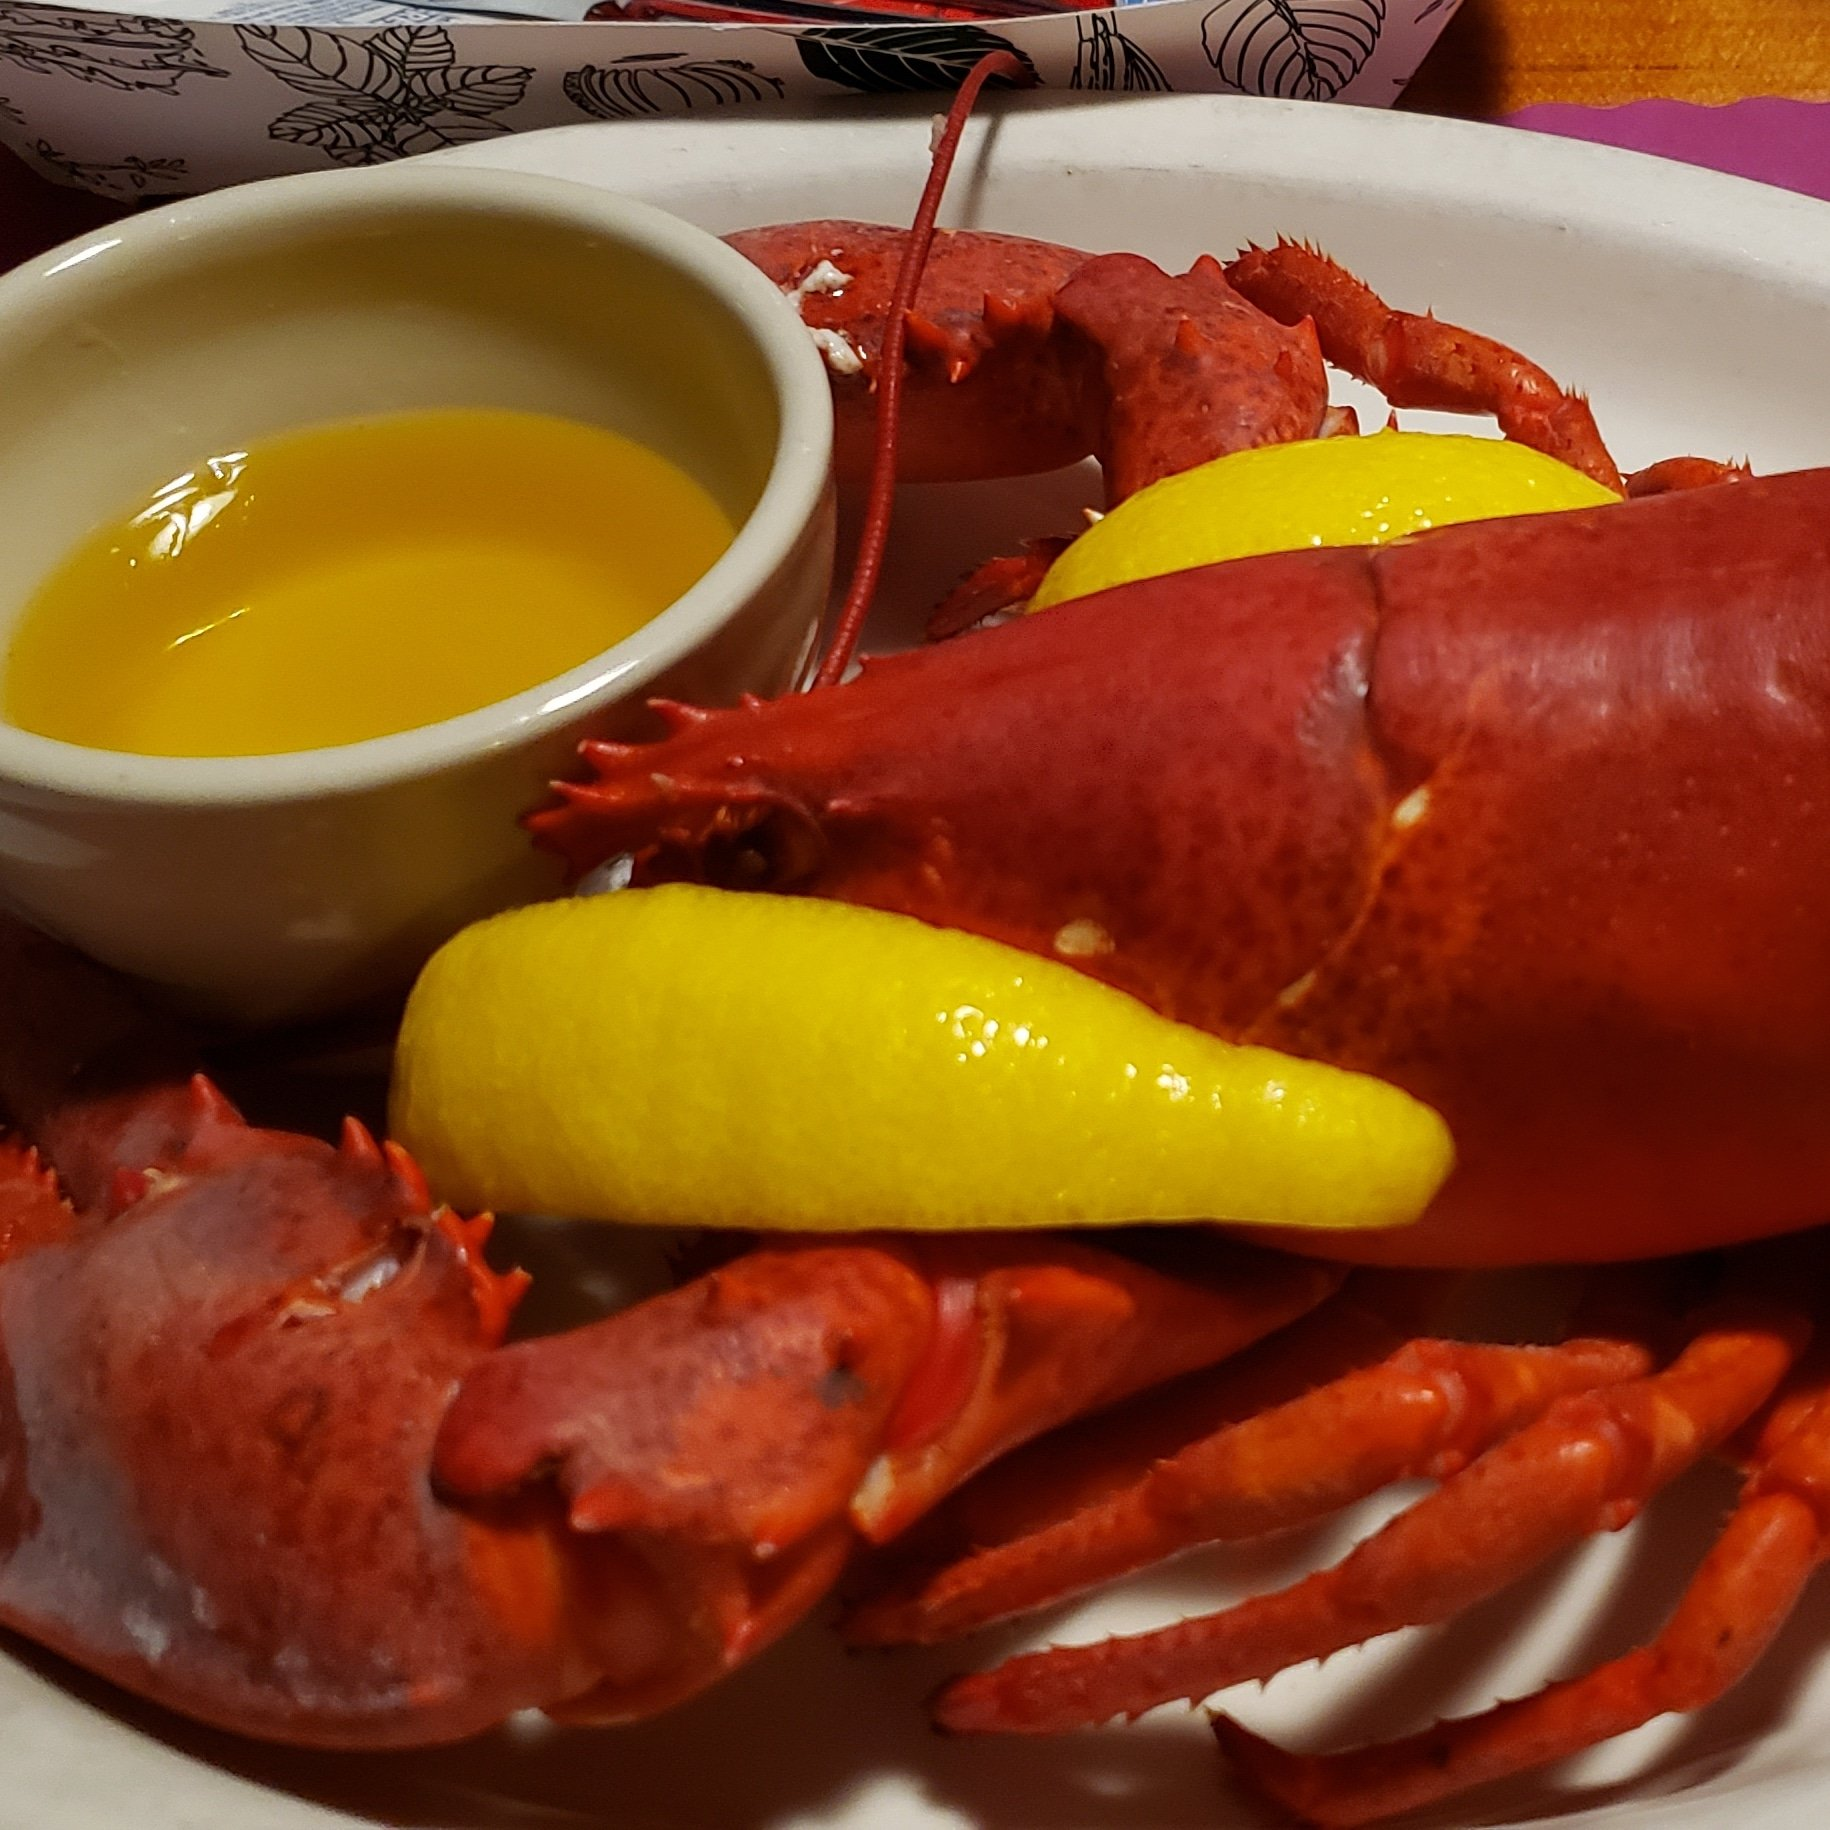 Steamed lobster with melted butter